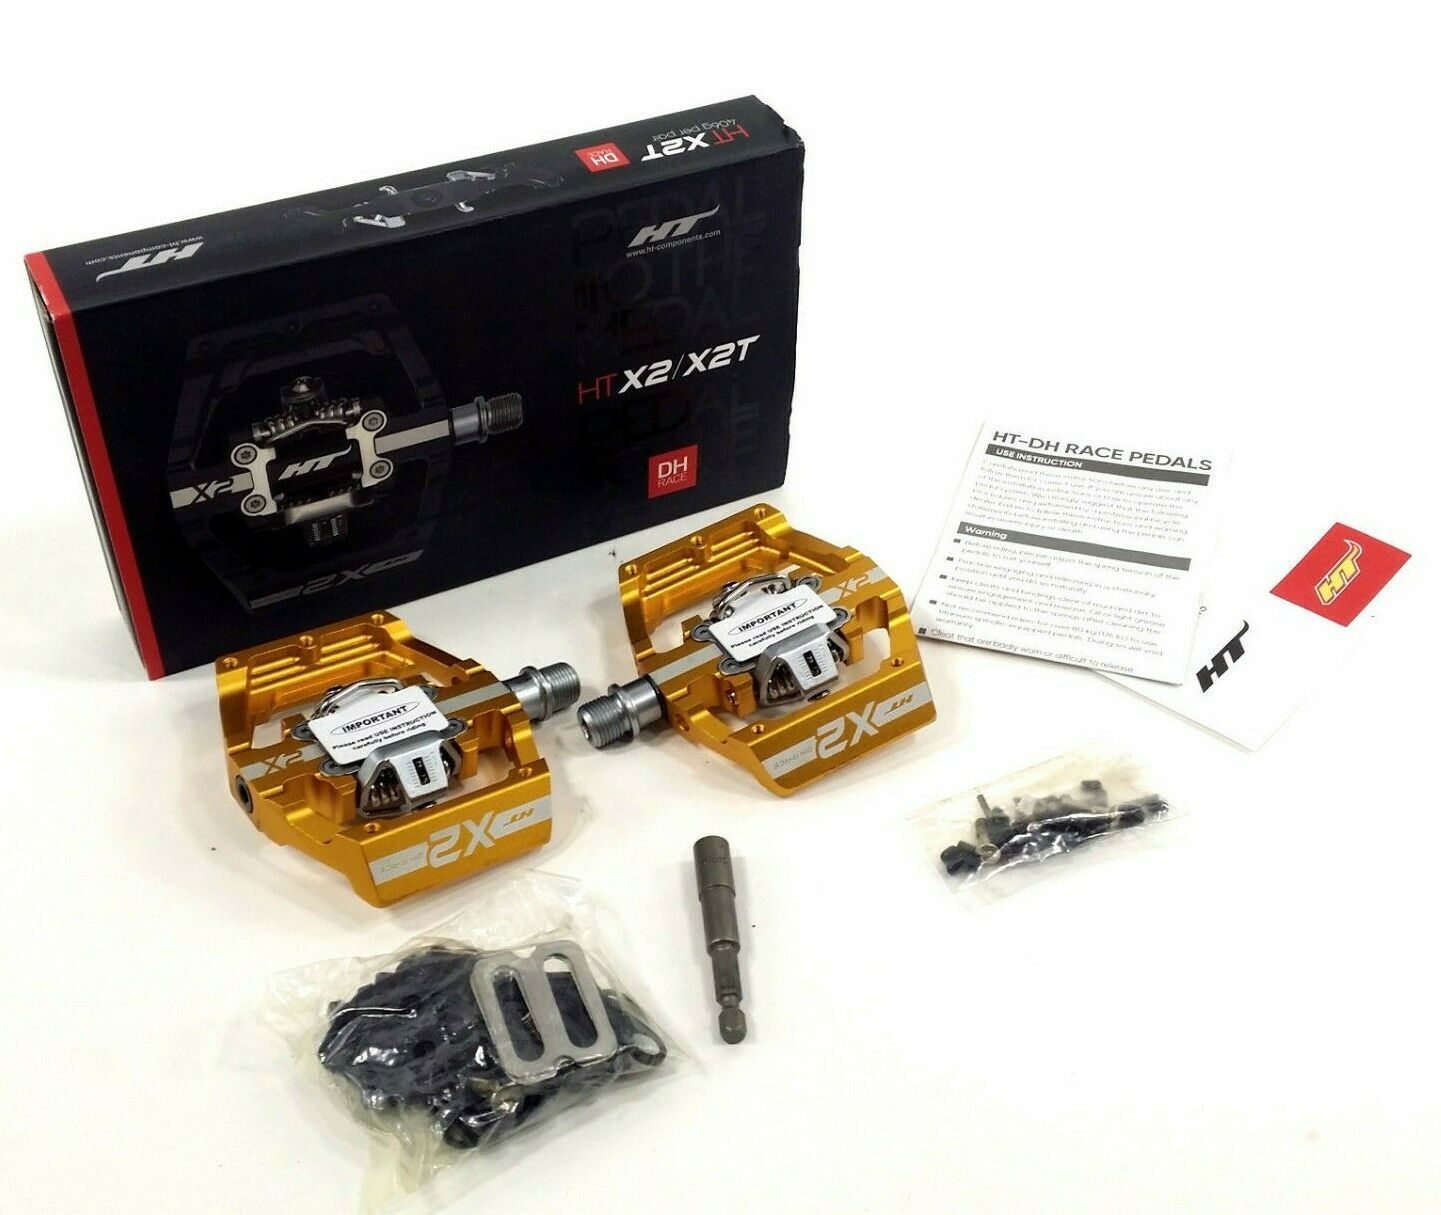 HT Components Pedals X2 Clipless Mountain Bike Platform Pedals, gold